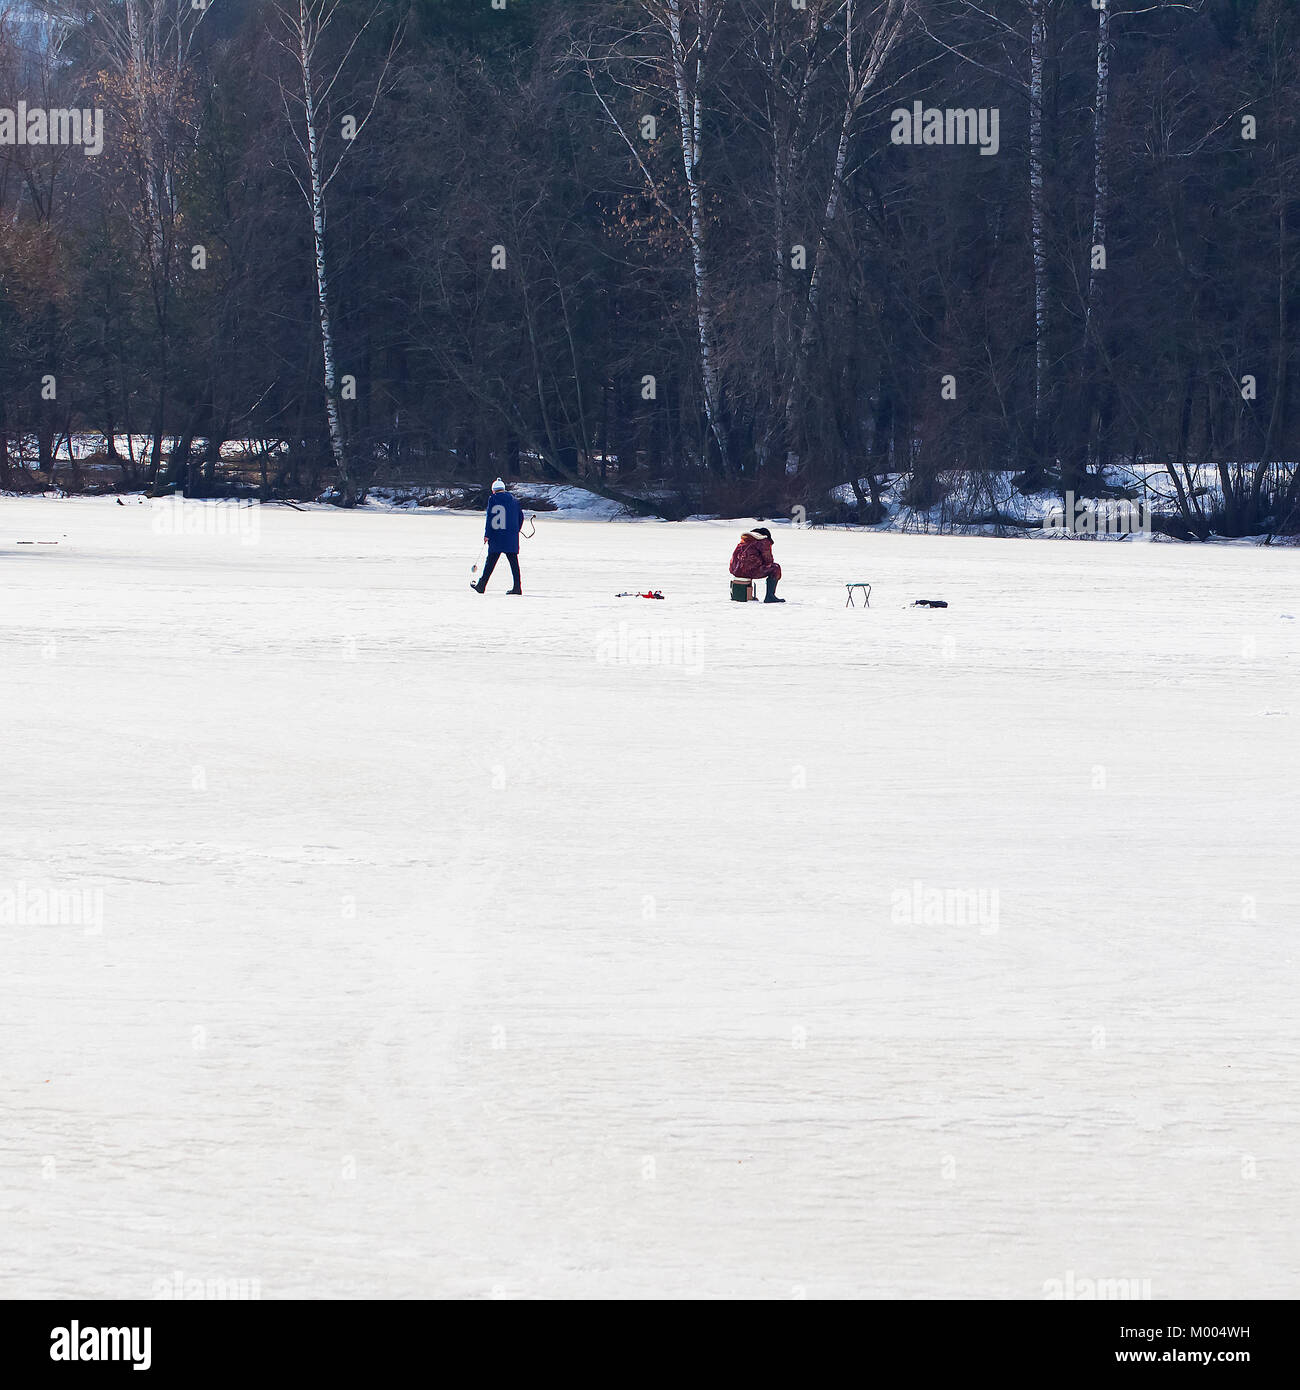 Winter fishing. River, lake near forest in ice. Anglers, Fishermens during your favorite leisure time. Copy space - Stock Image